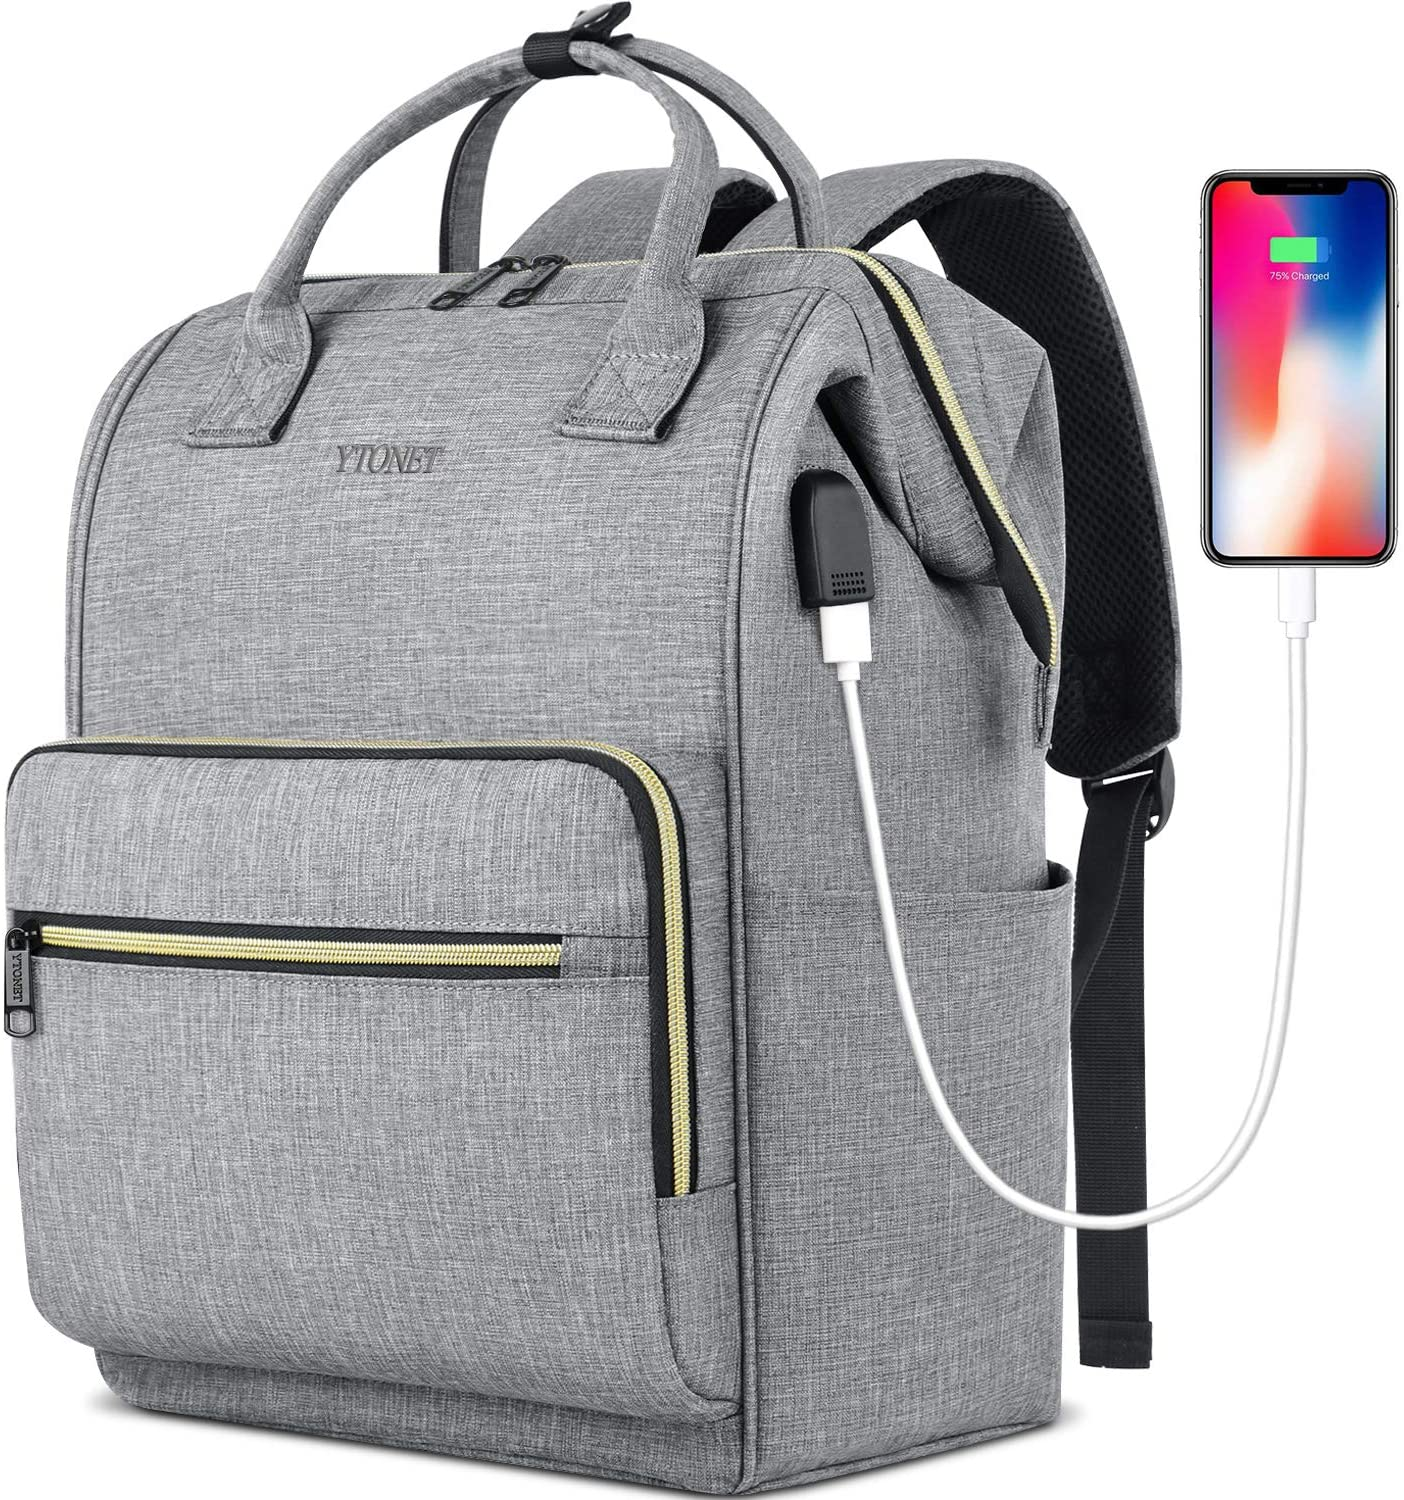 Ytonet Travel Backpack